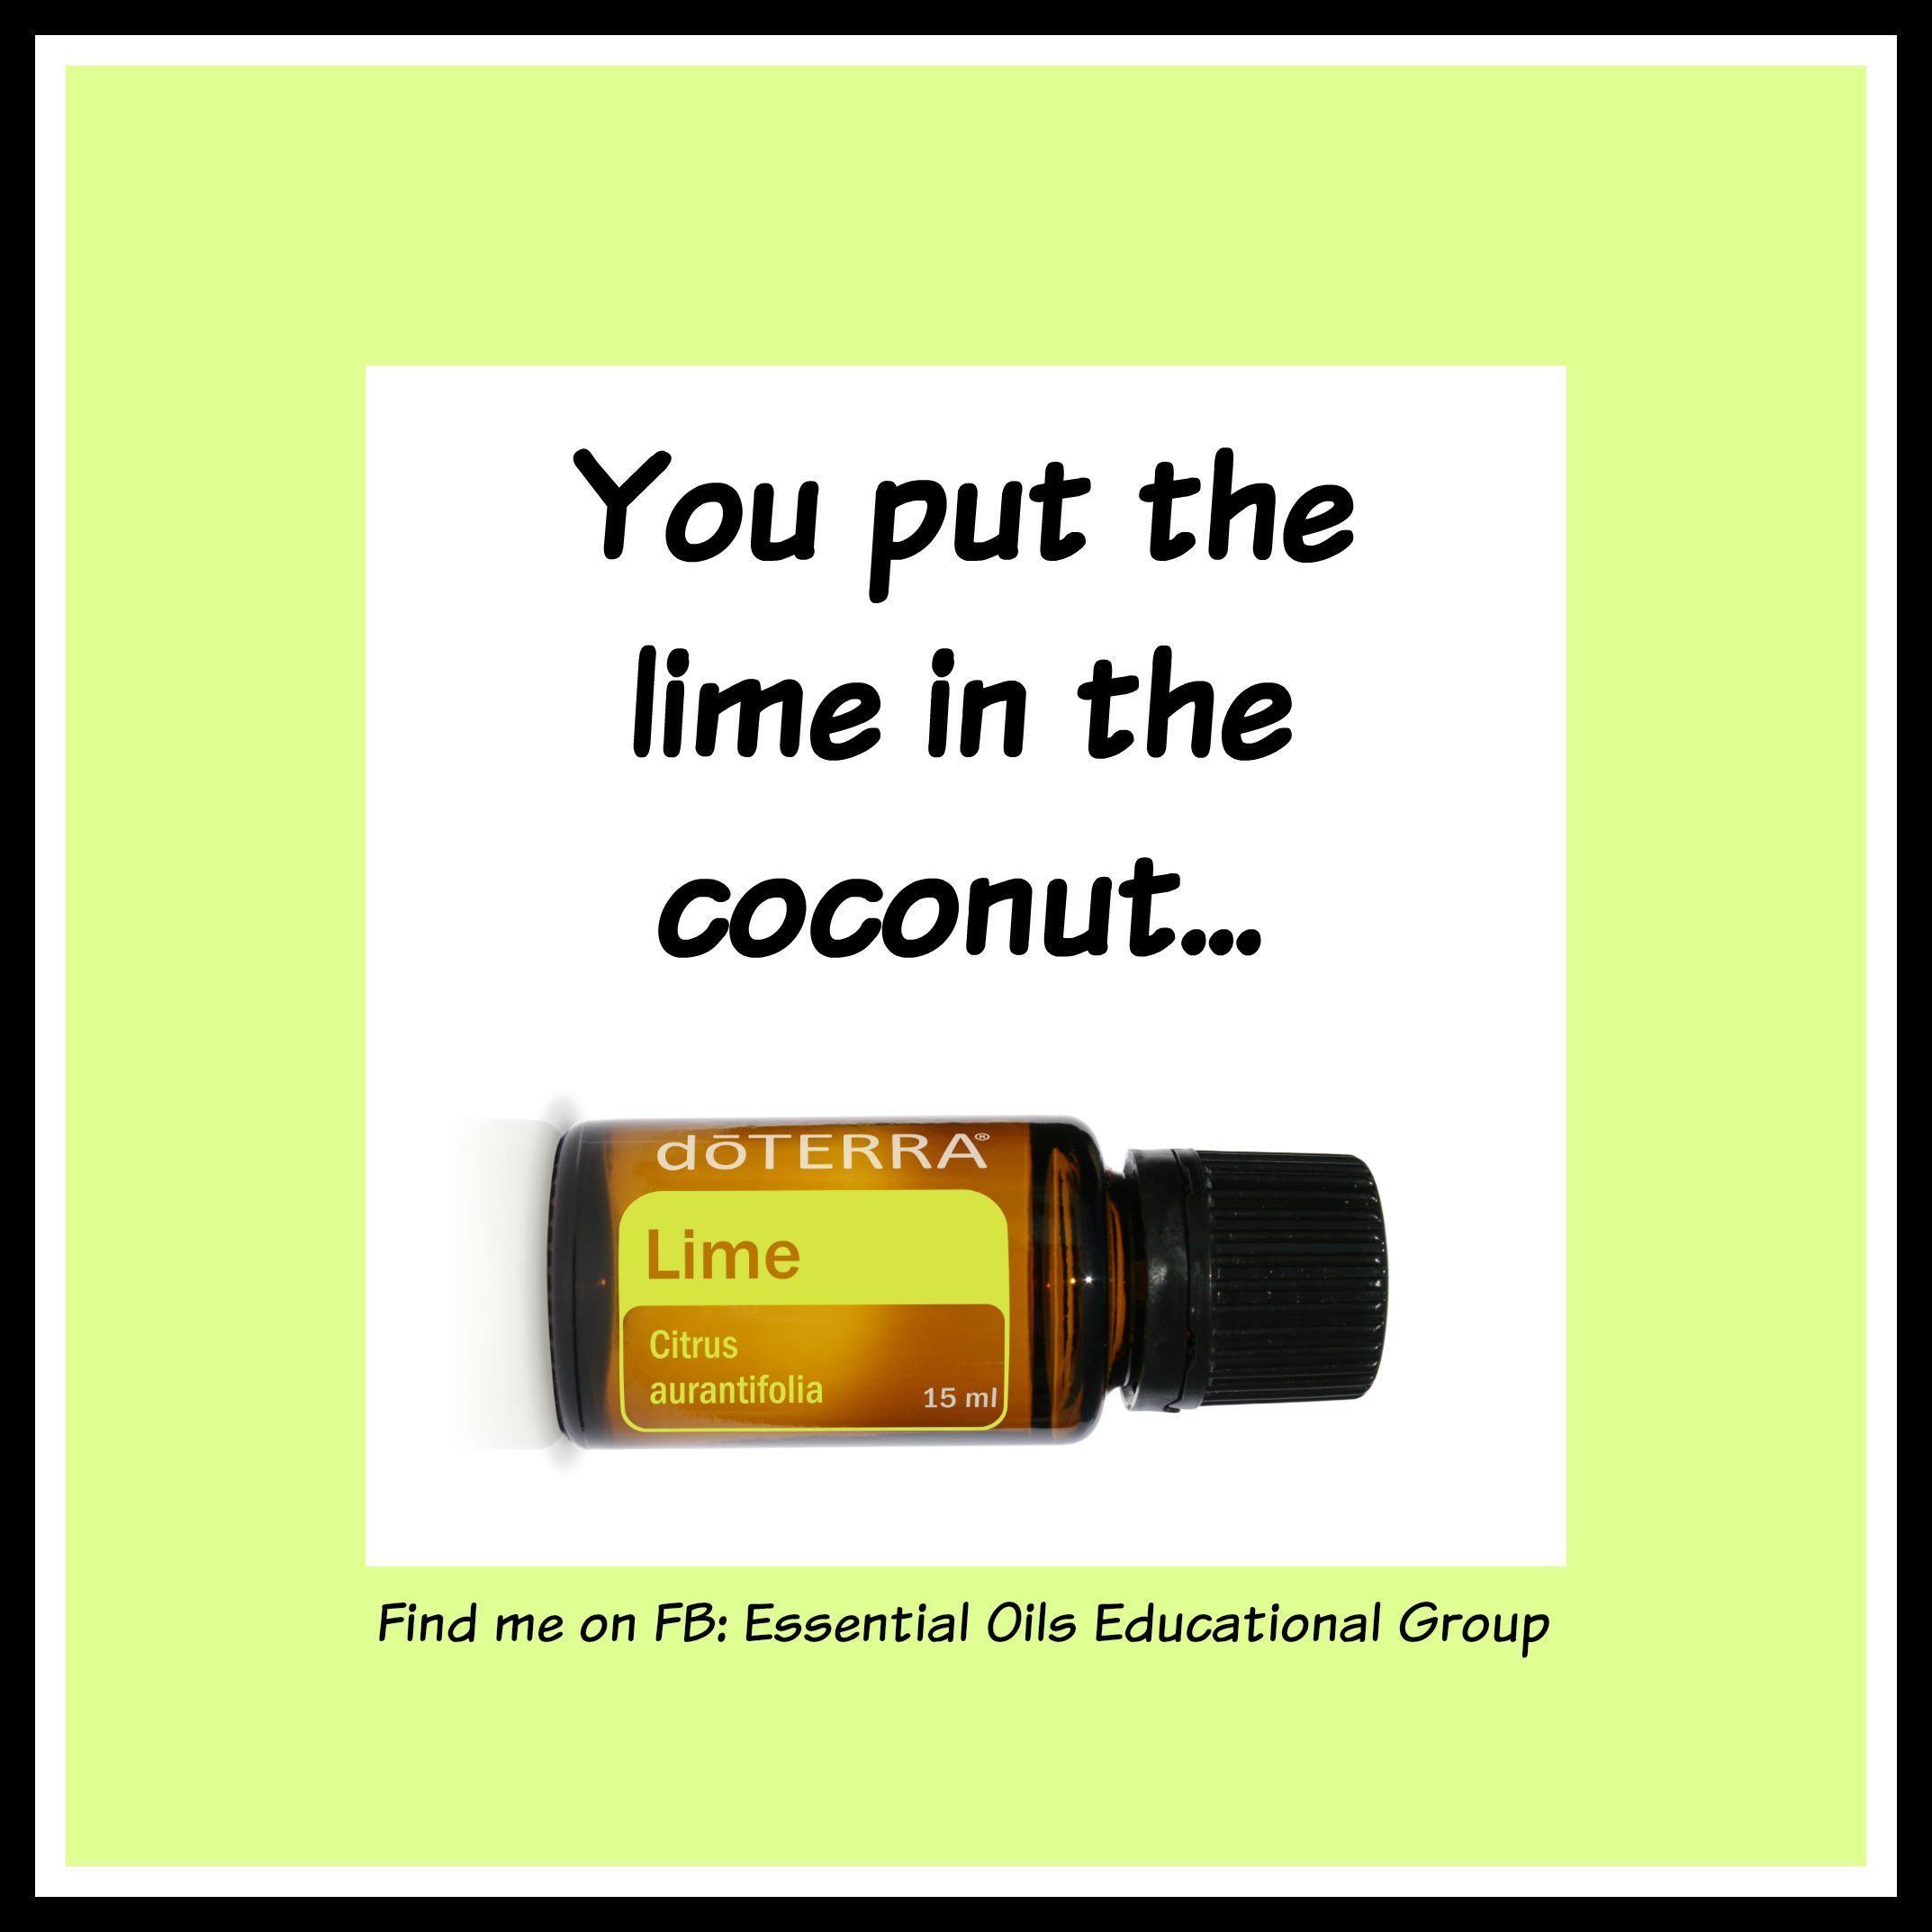 Try adding a few drops of Lime essential oil to virgin